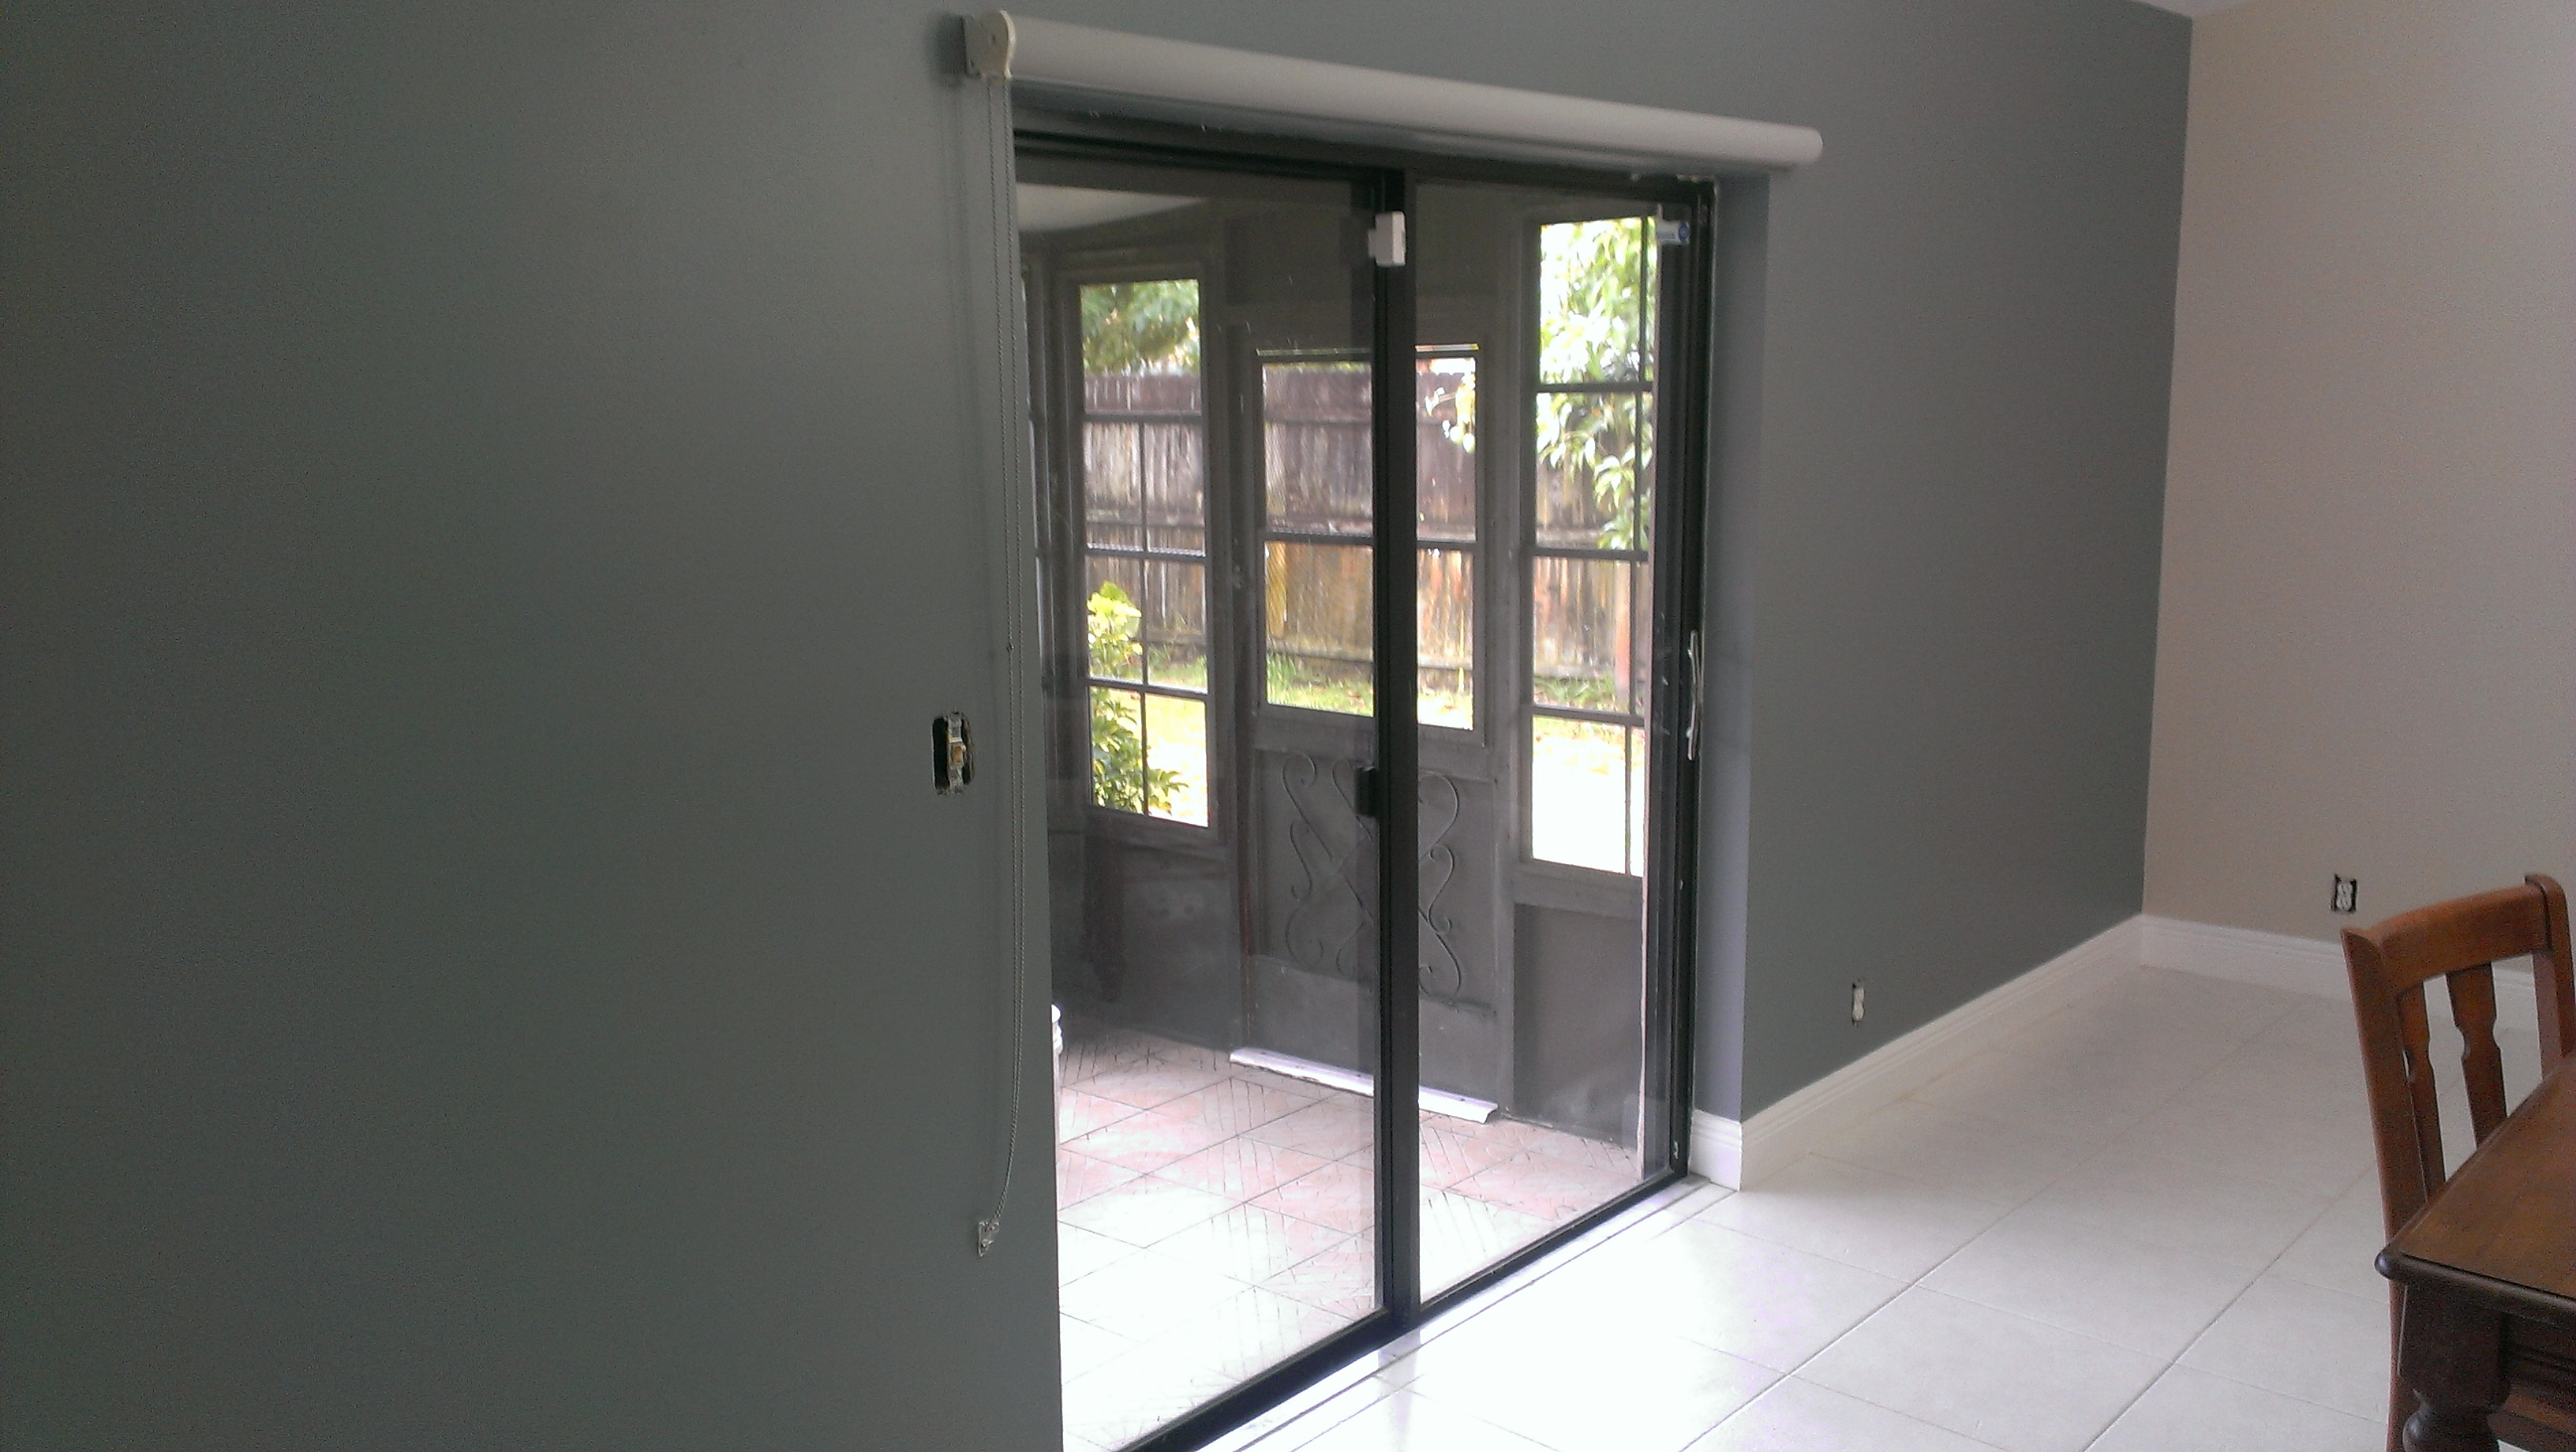 stunning doors door about pinterest blinds shades home for decorating patio ideas on glass sliding